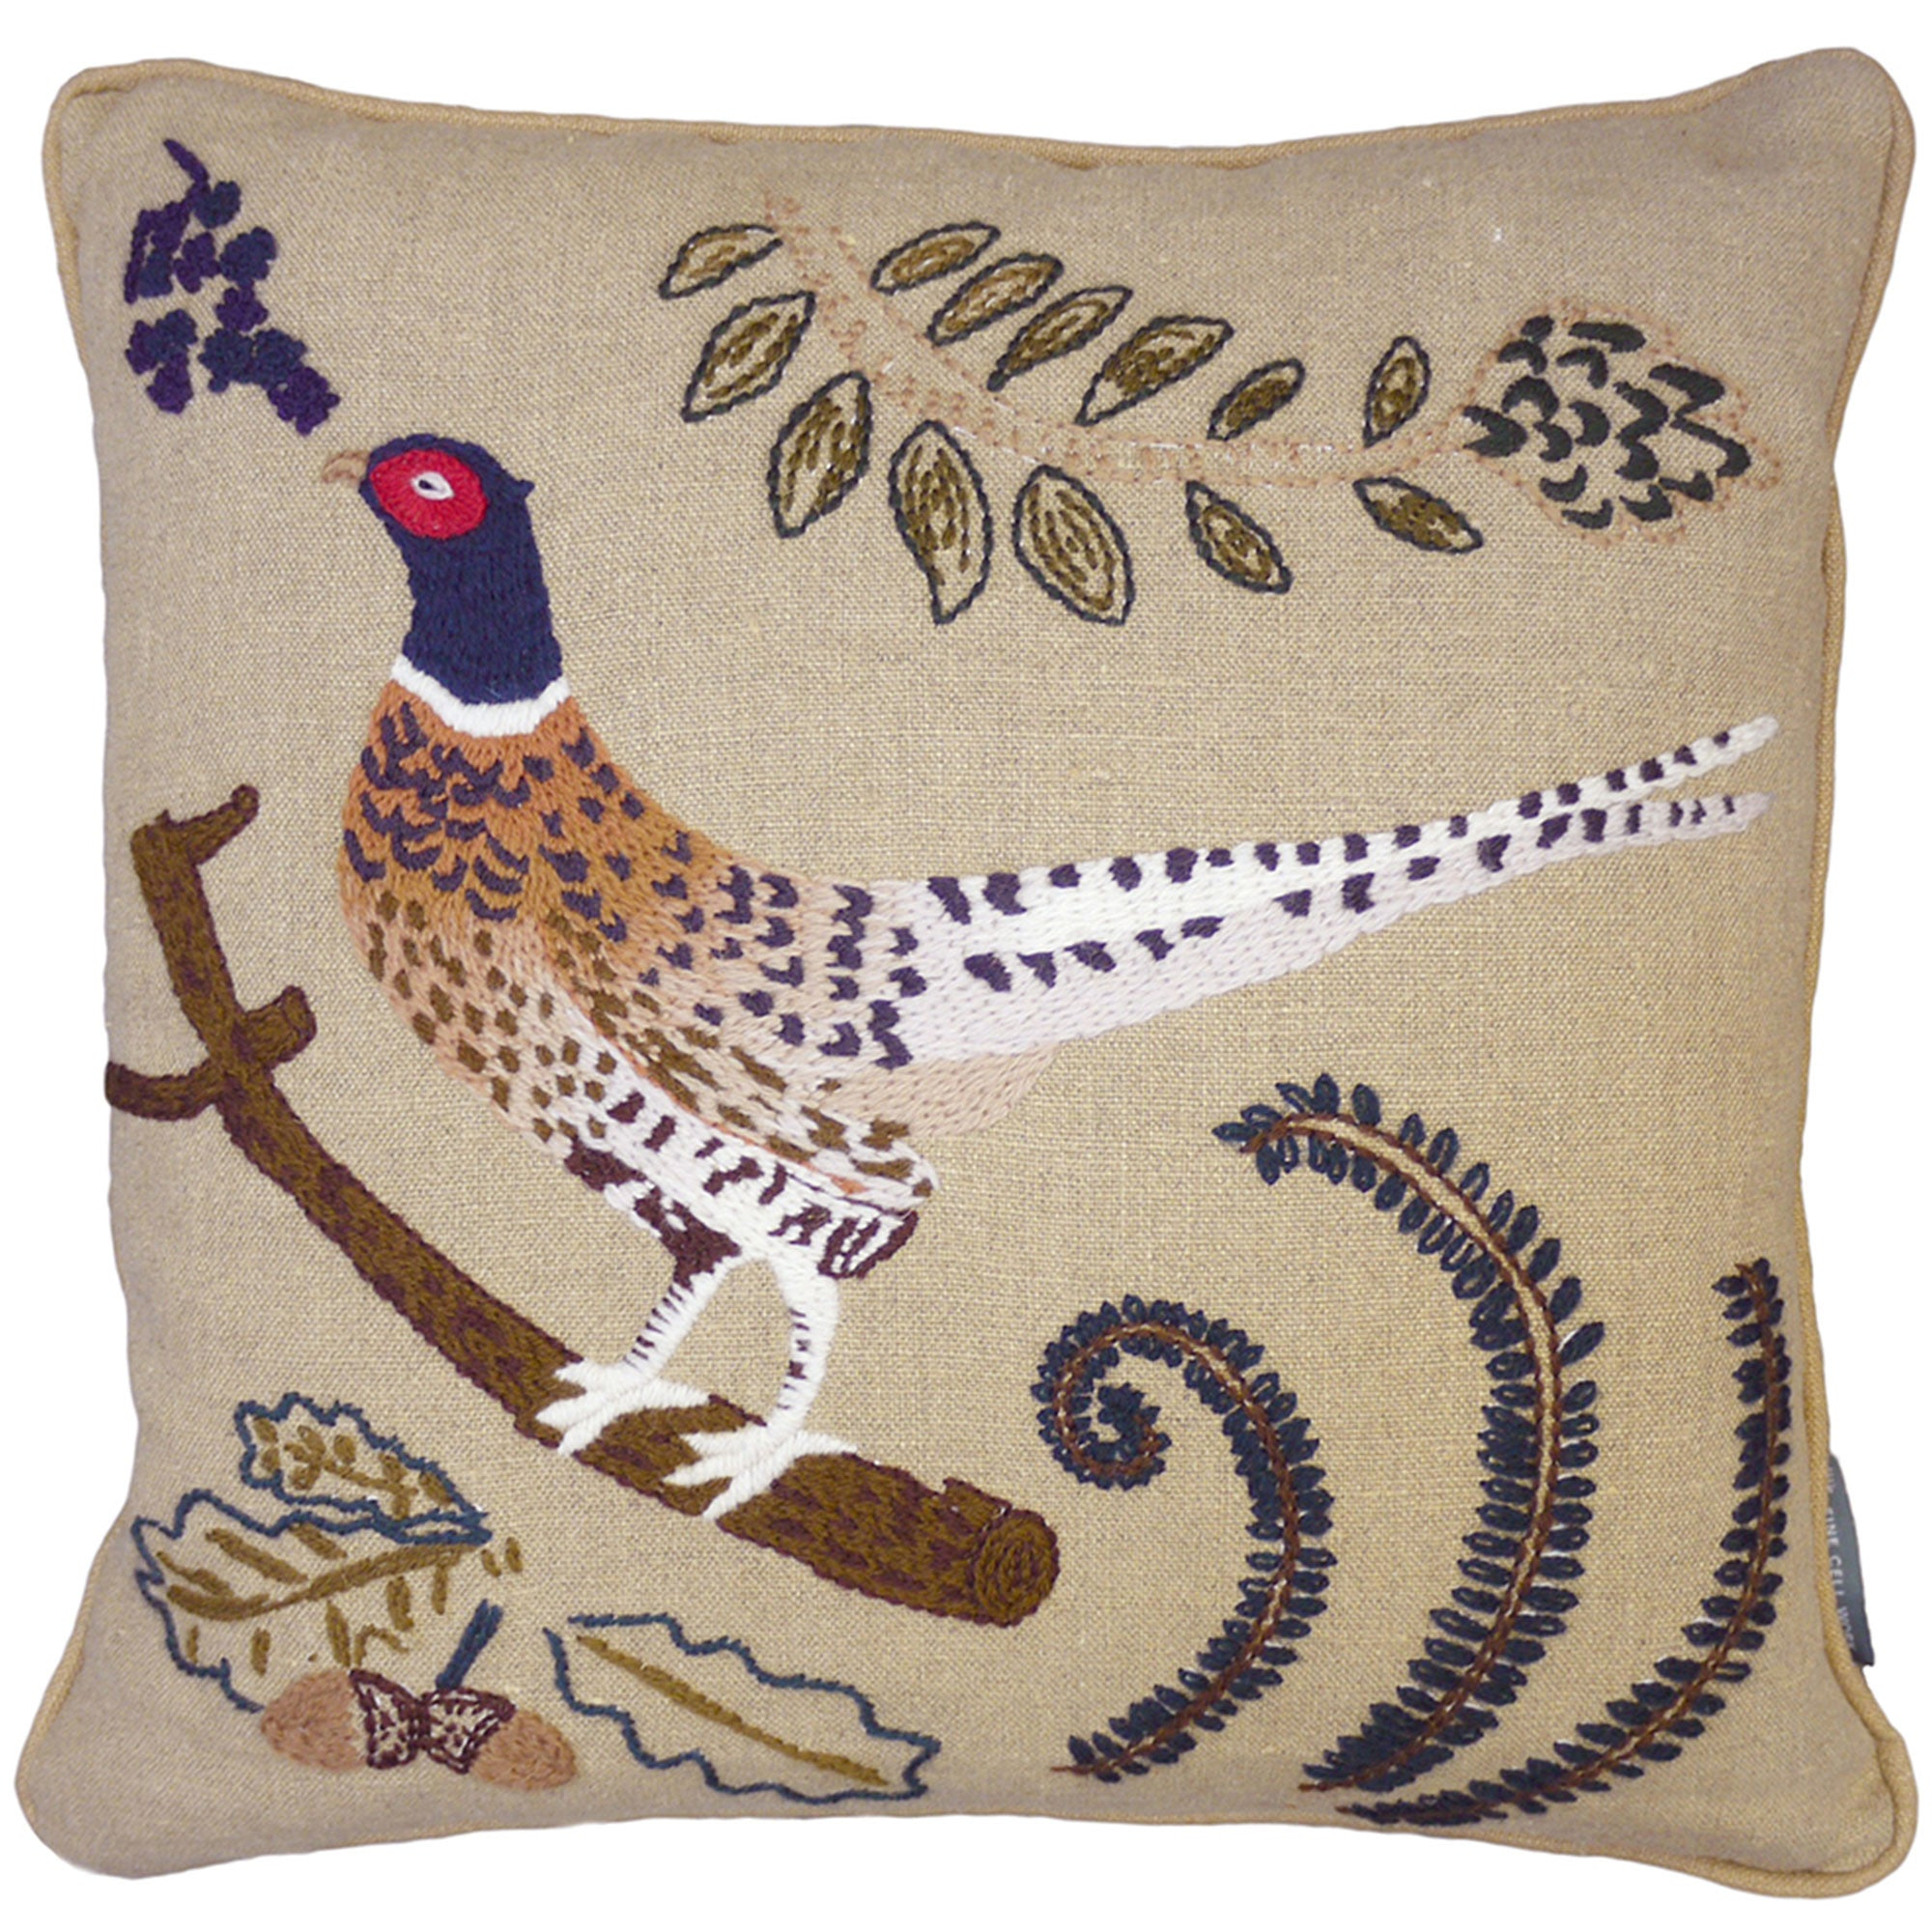 Embroidered Pheasant Cushion Made To Order